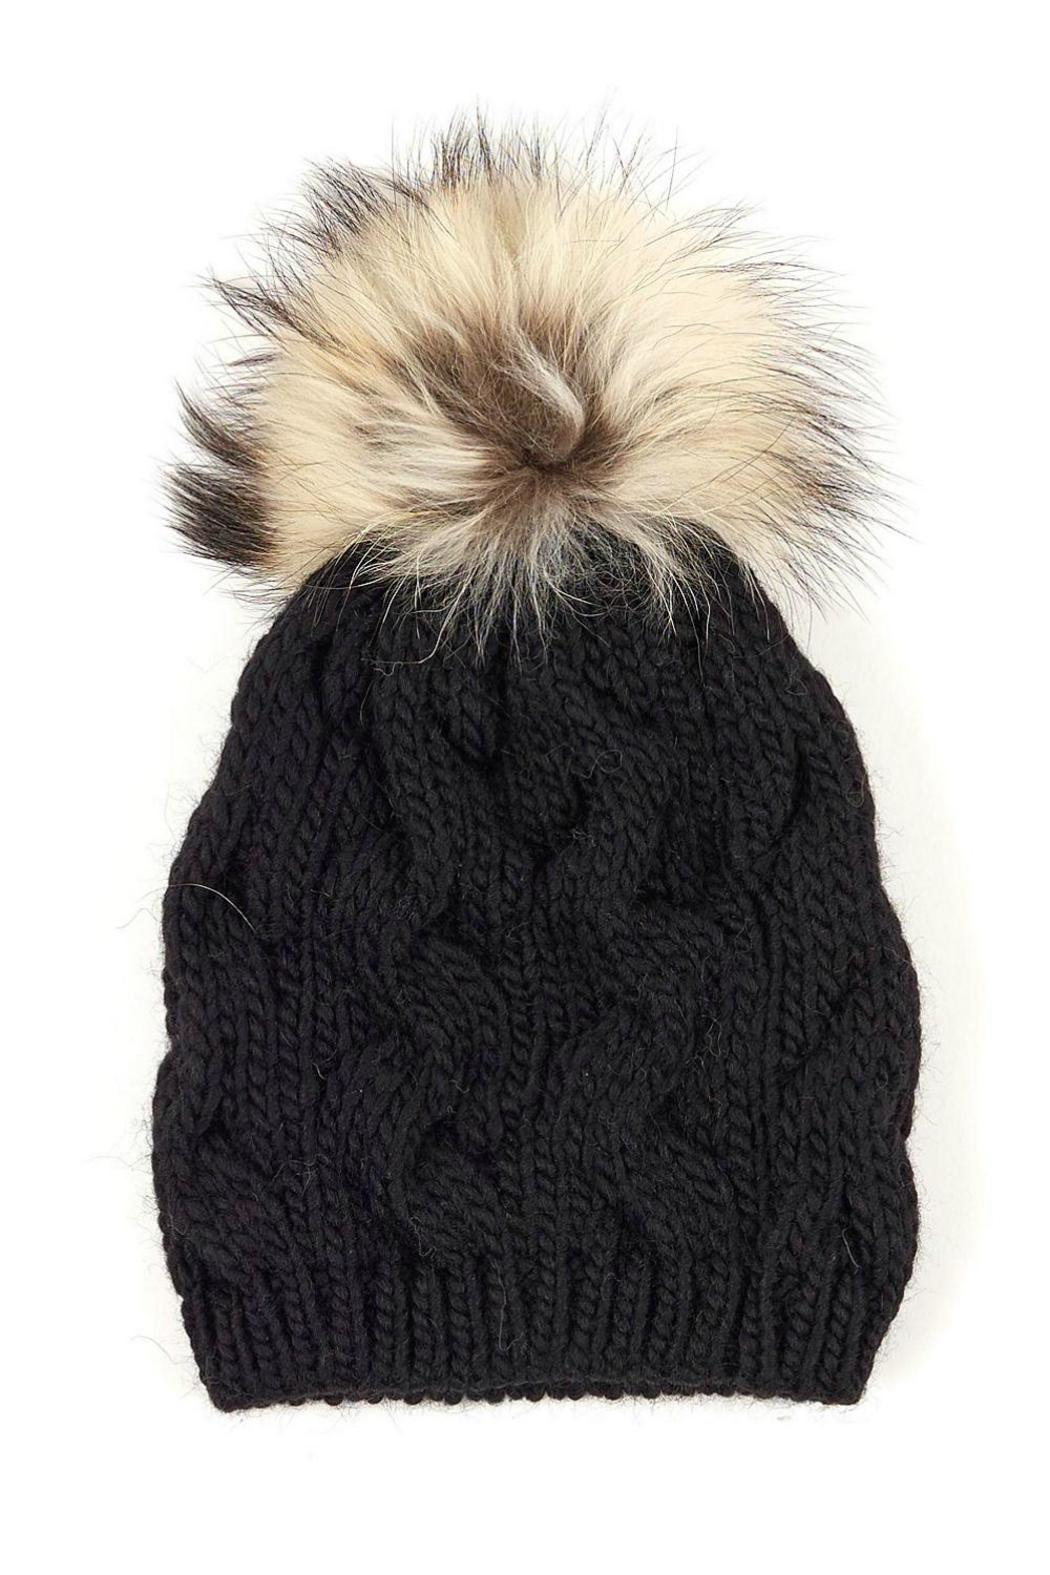 026a63c94bd Echo Design Raccoon Pompom Hat from Cape Cod by Painted Daisies ...